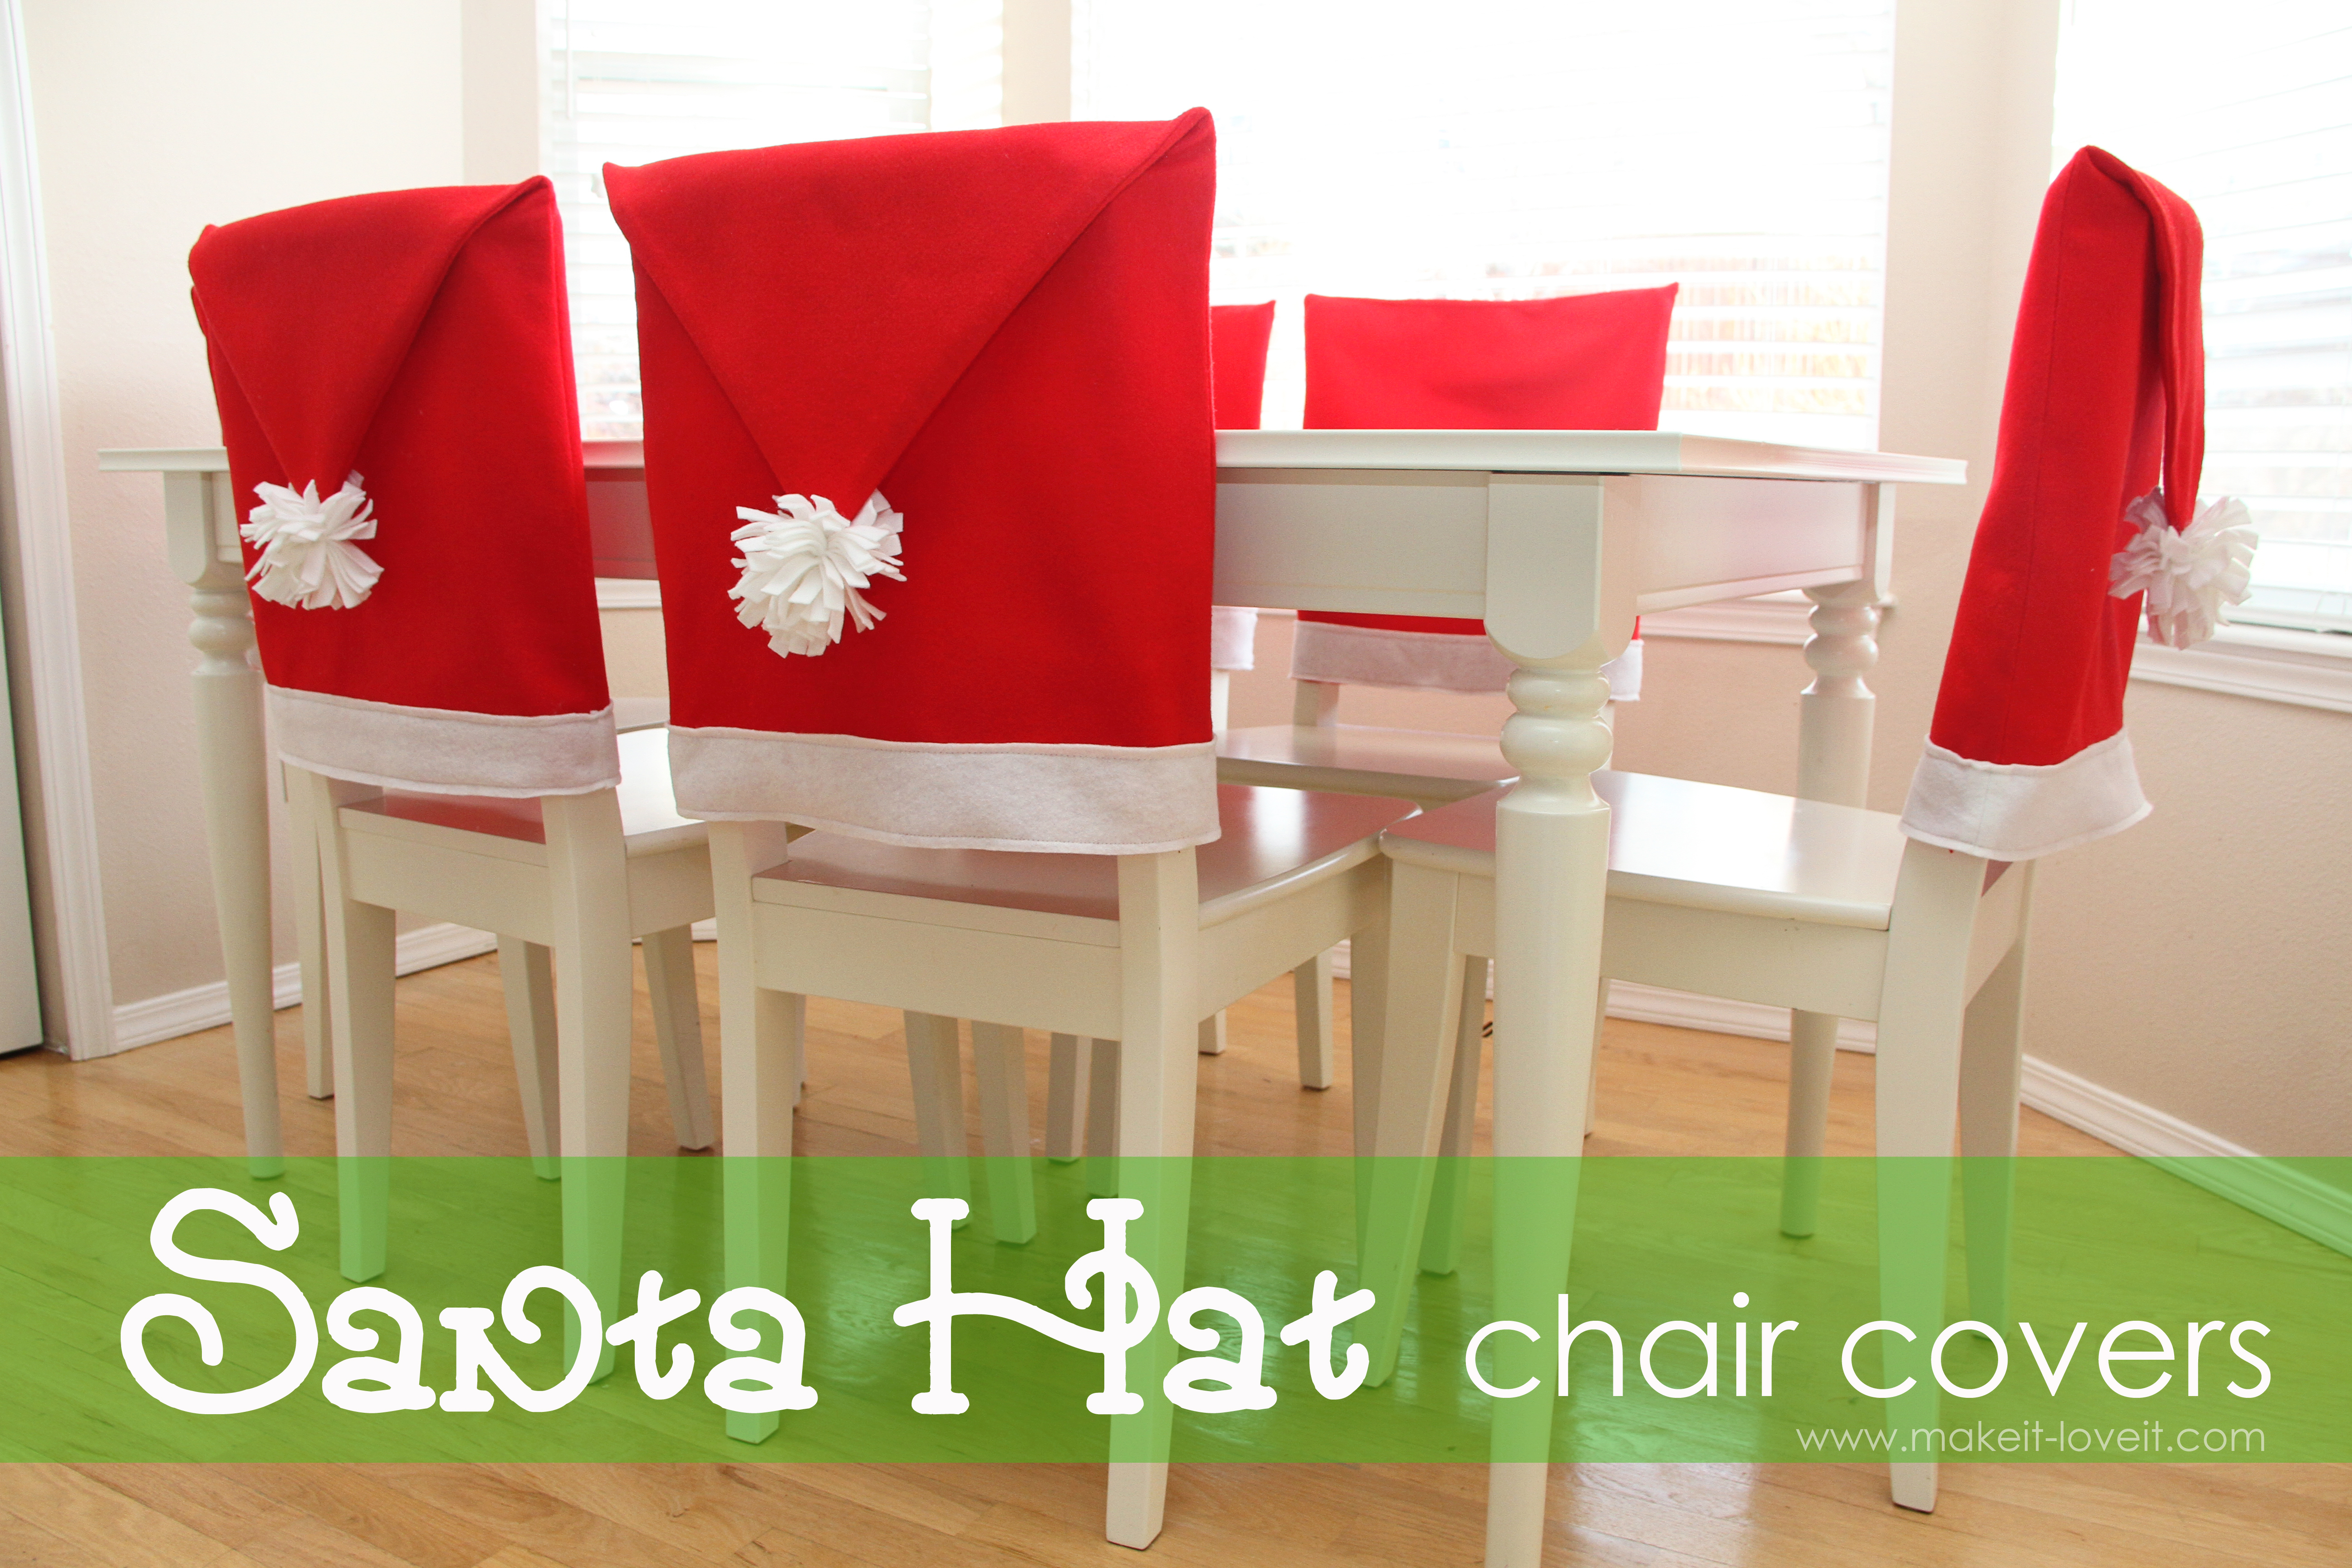 Santa hat chair covers a serious bah humbug repellent for Housse chaise